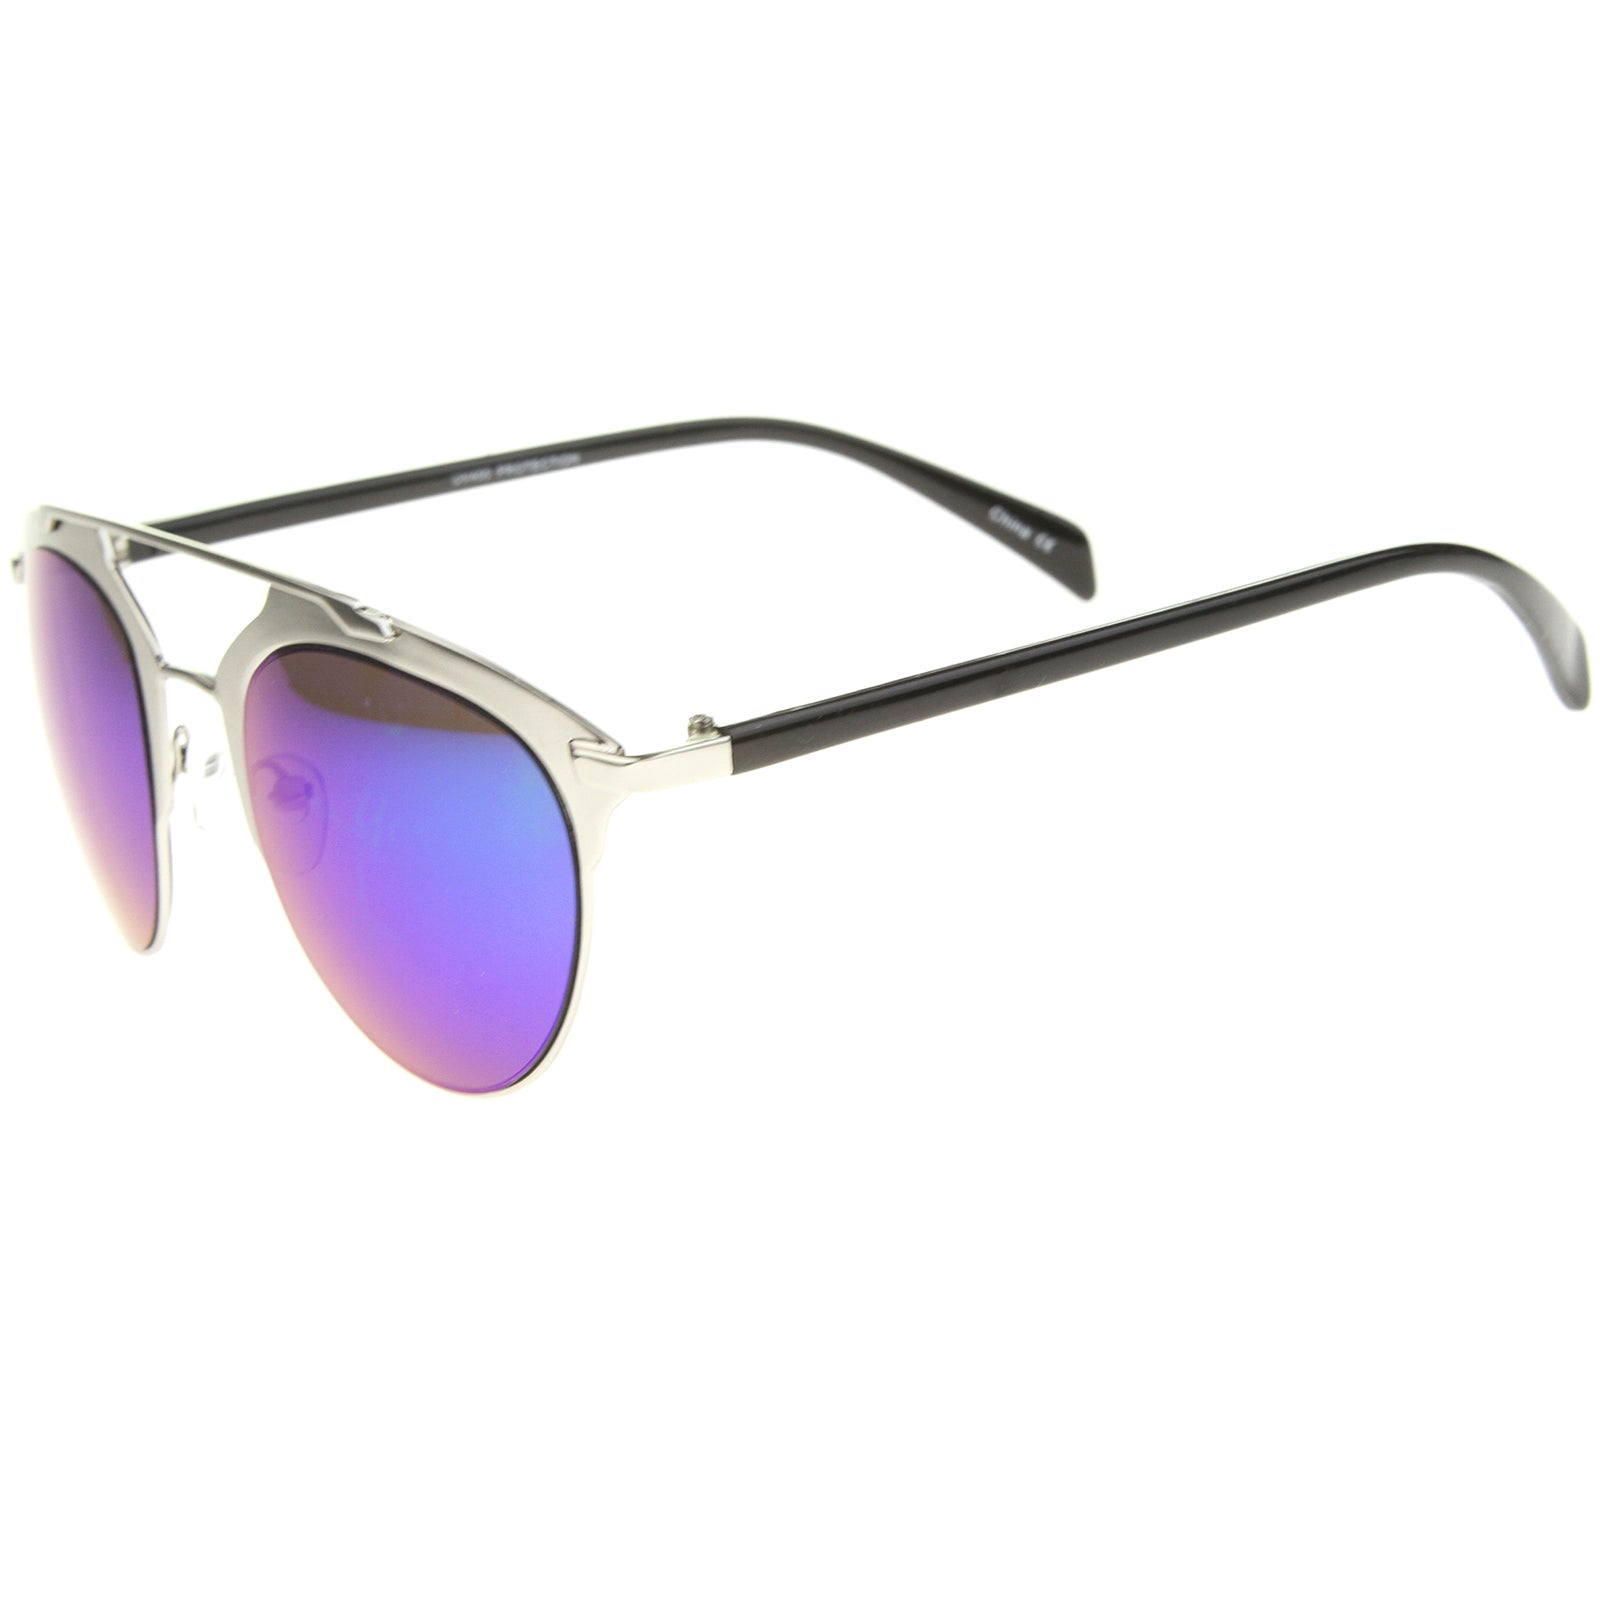 Modern Fashion Metal Double Bridge Mirror Lens Pantos Aviator Sunglasses 50mm - sunglass.la - 15